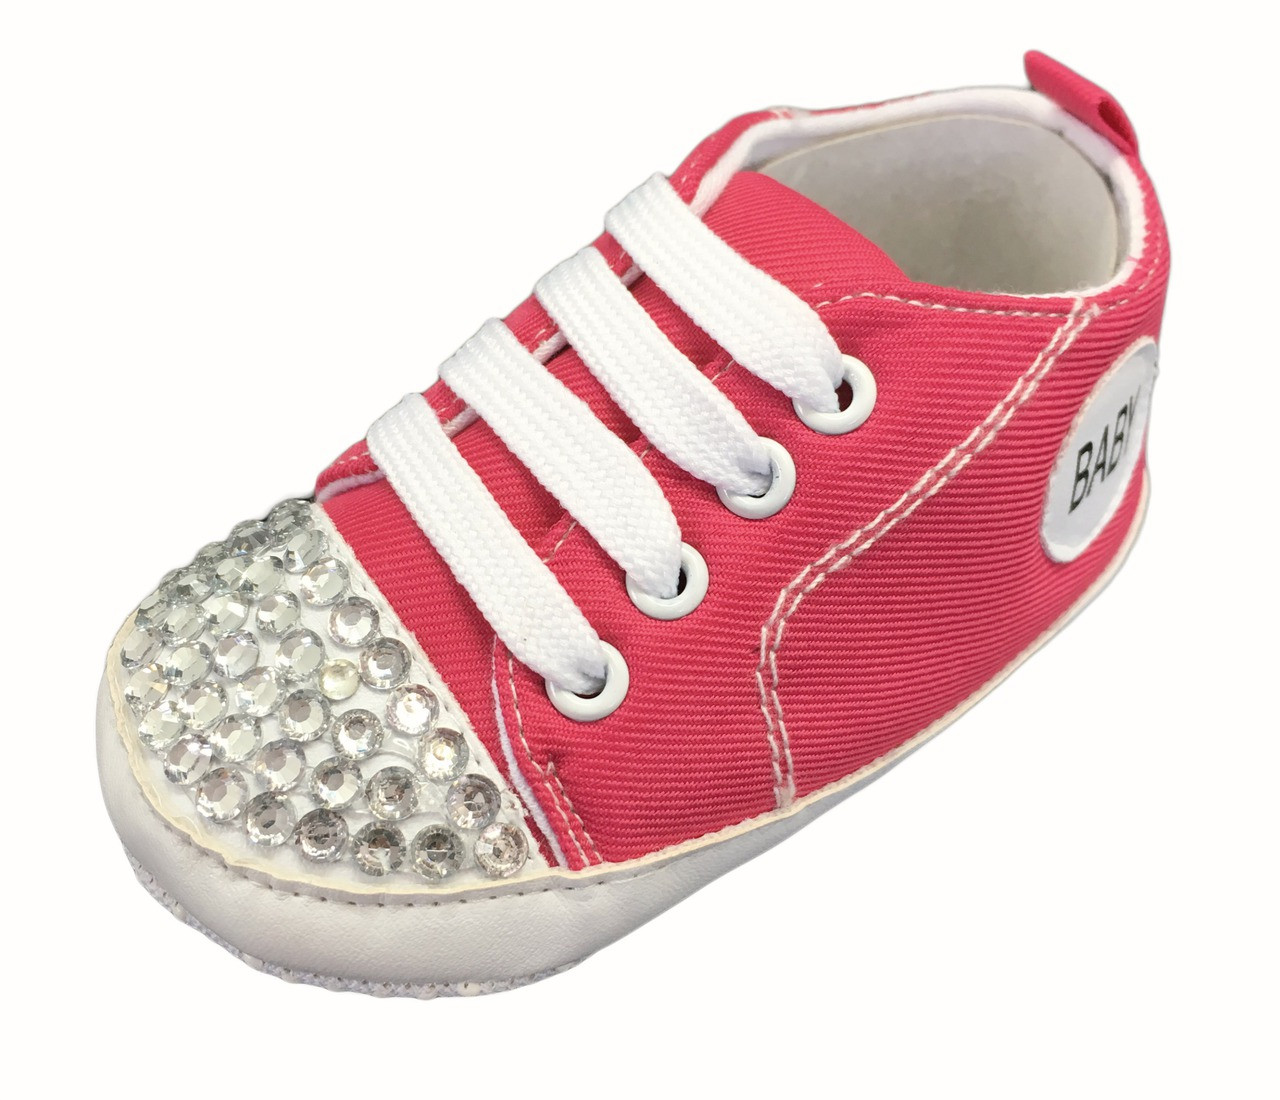 Infant Sneakers Hot Pink Baby Sneakers With Rhinestones